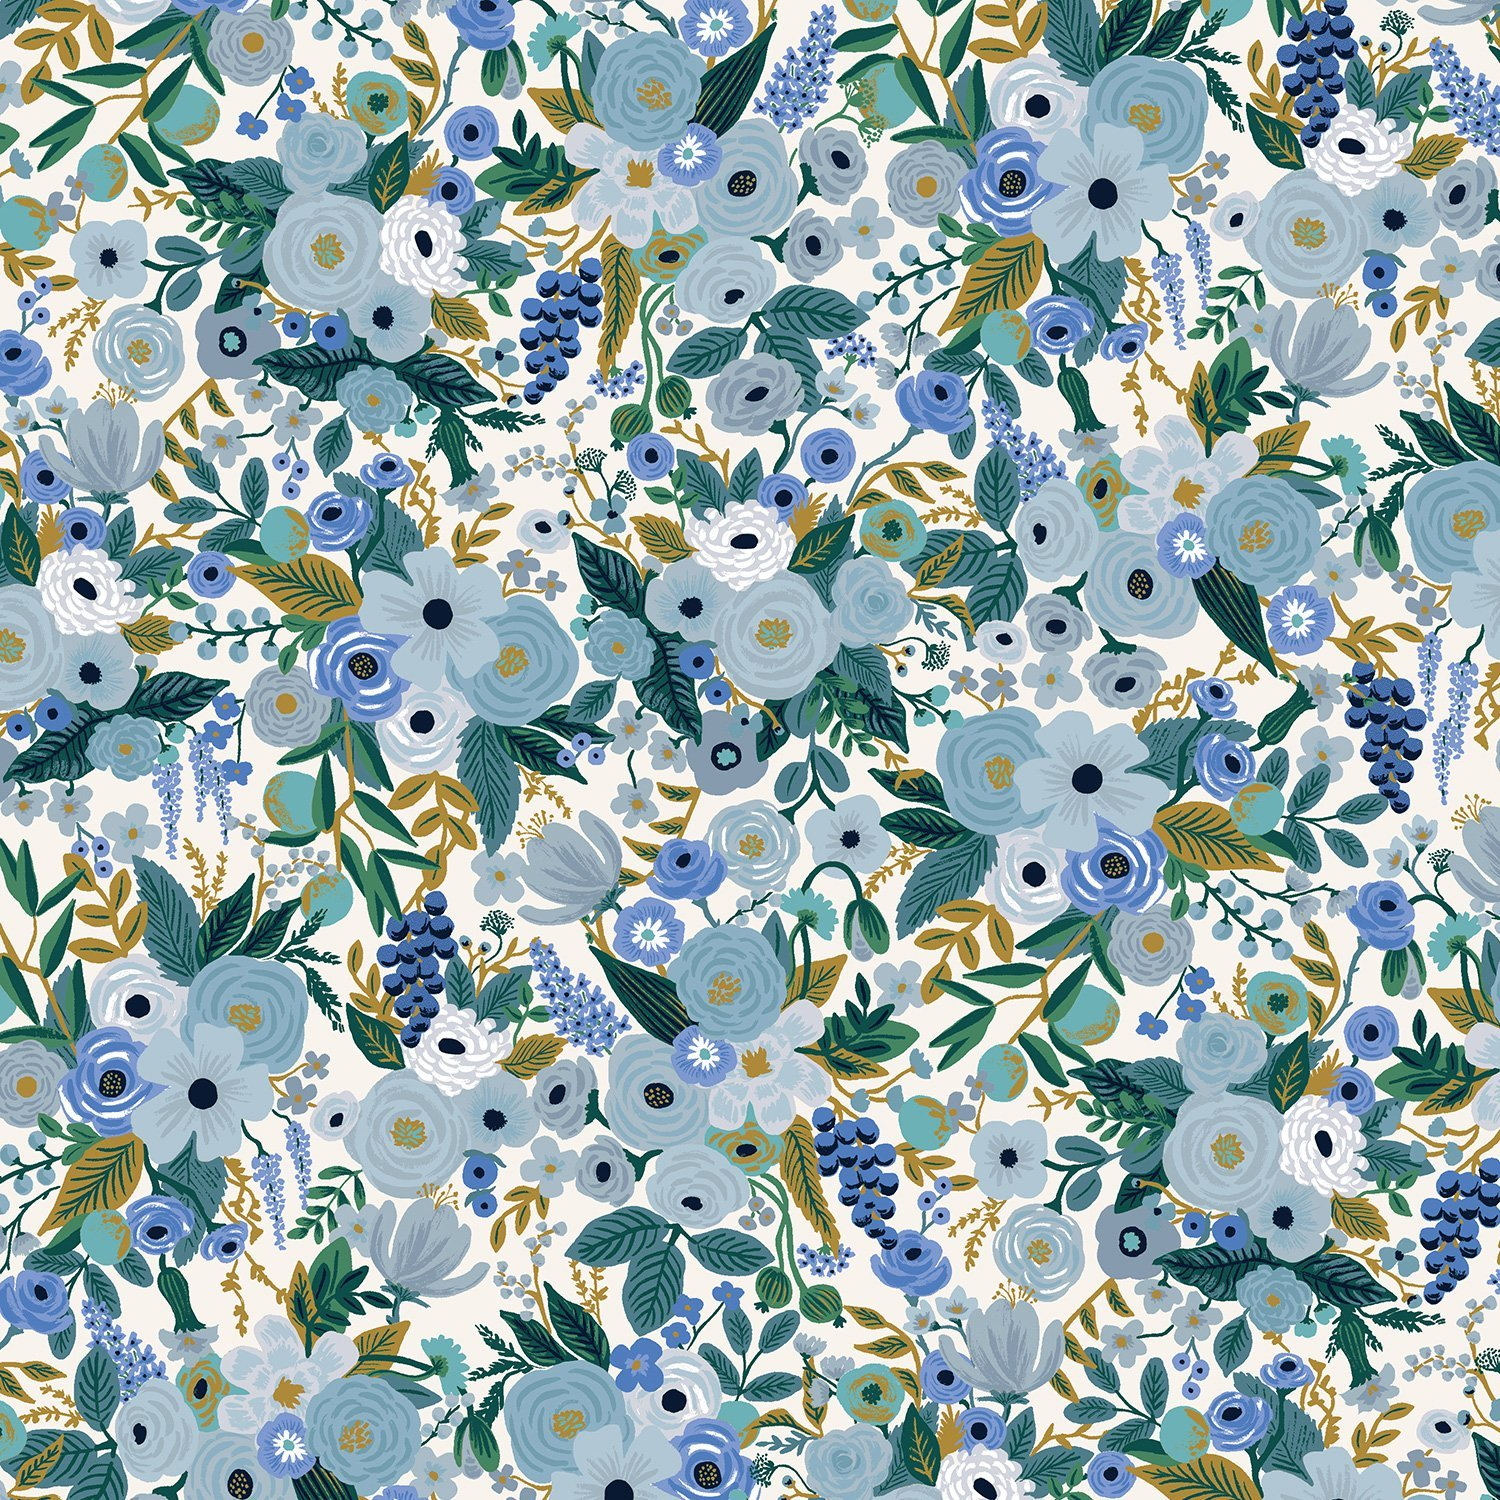 Garden Party - Petite Garden Party - Blue Fabric by Cotton + Steel